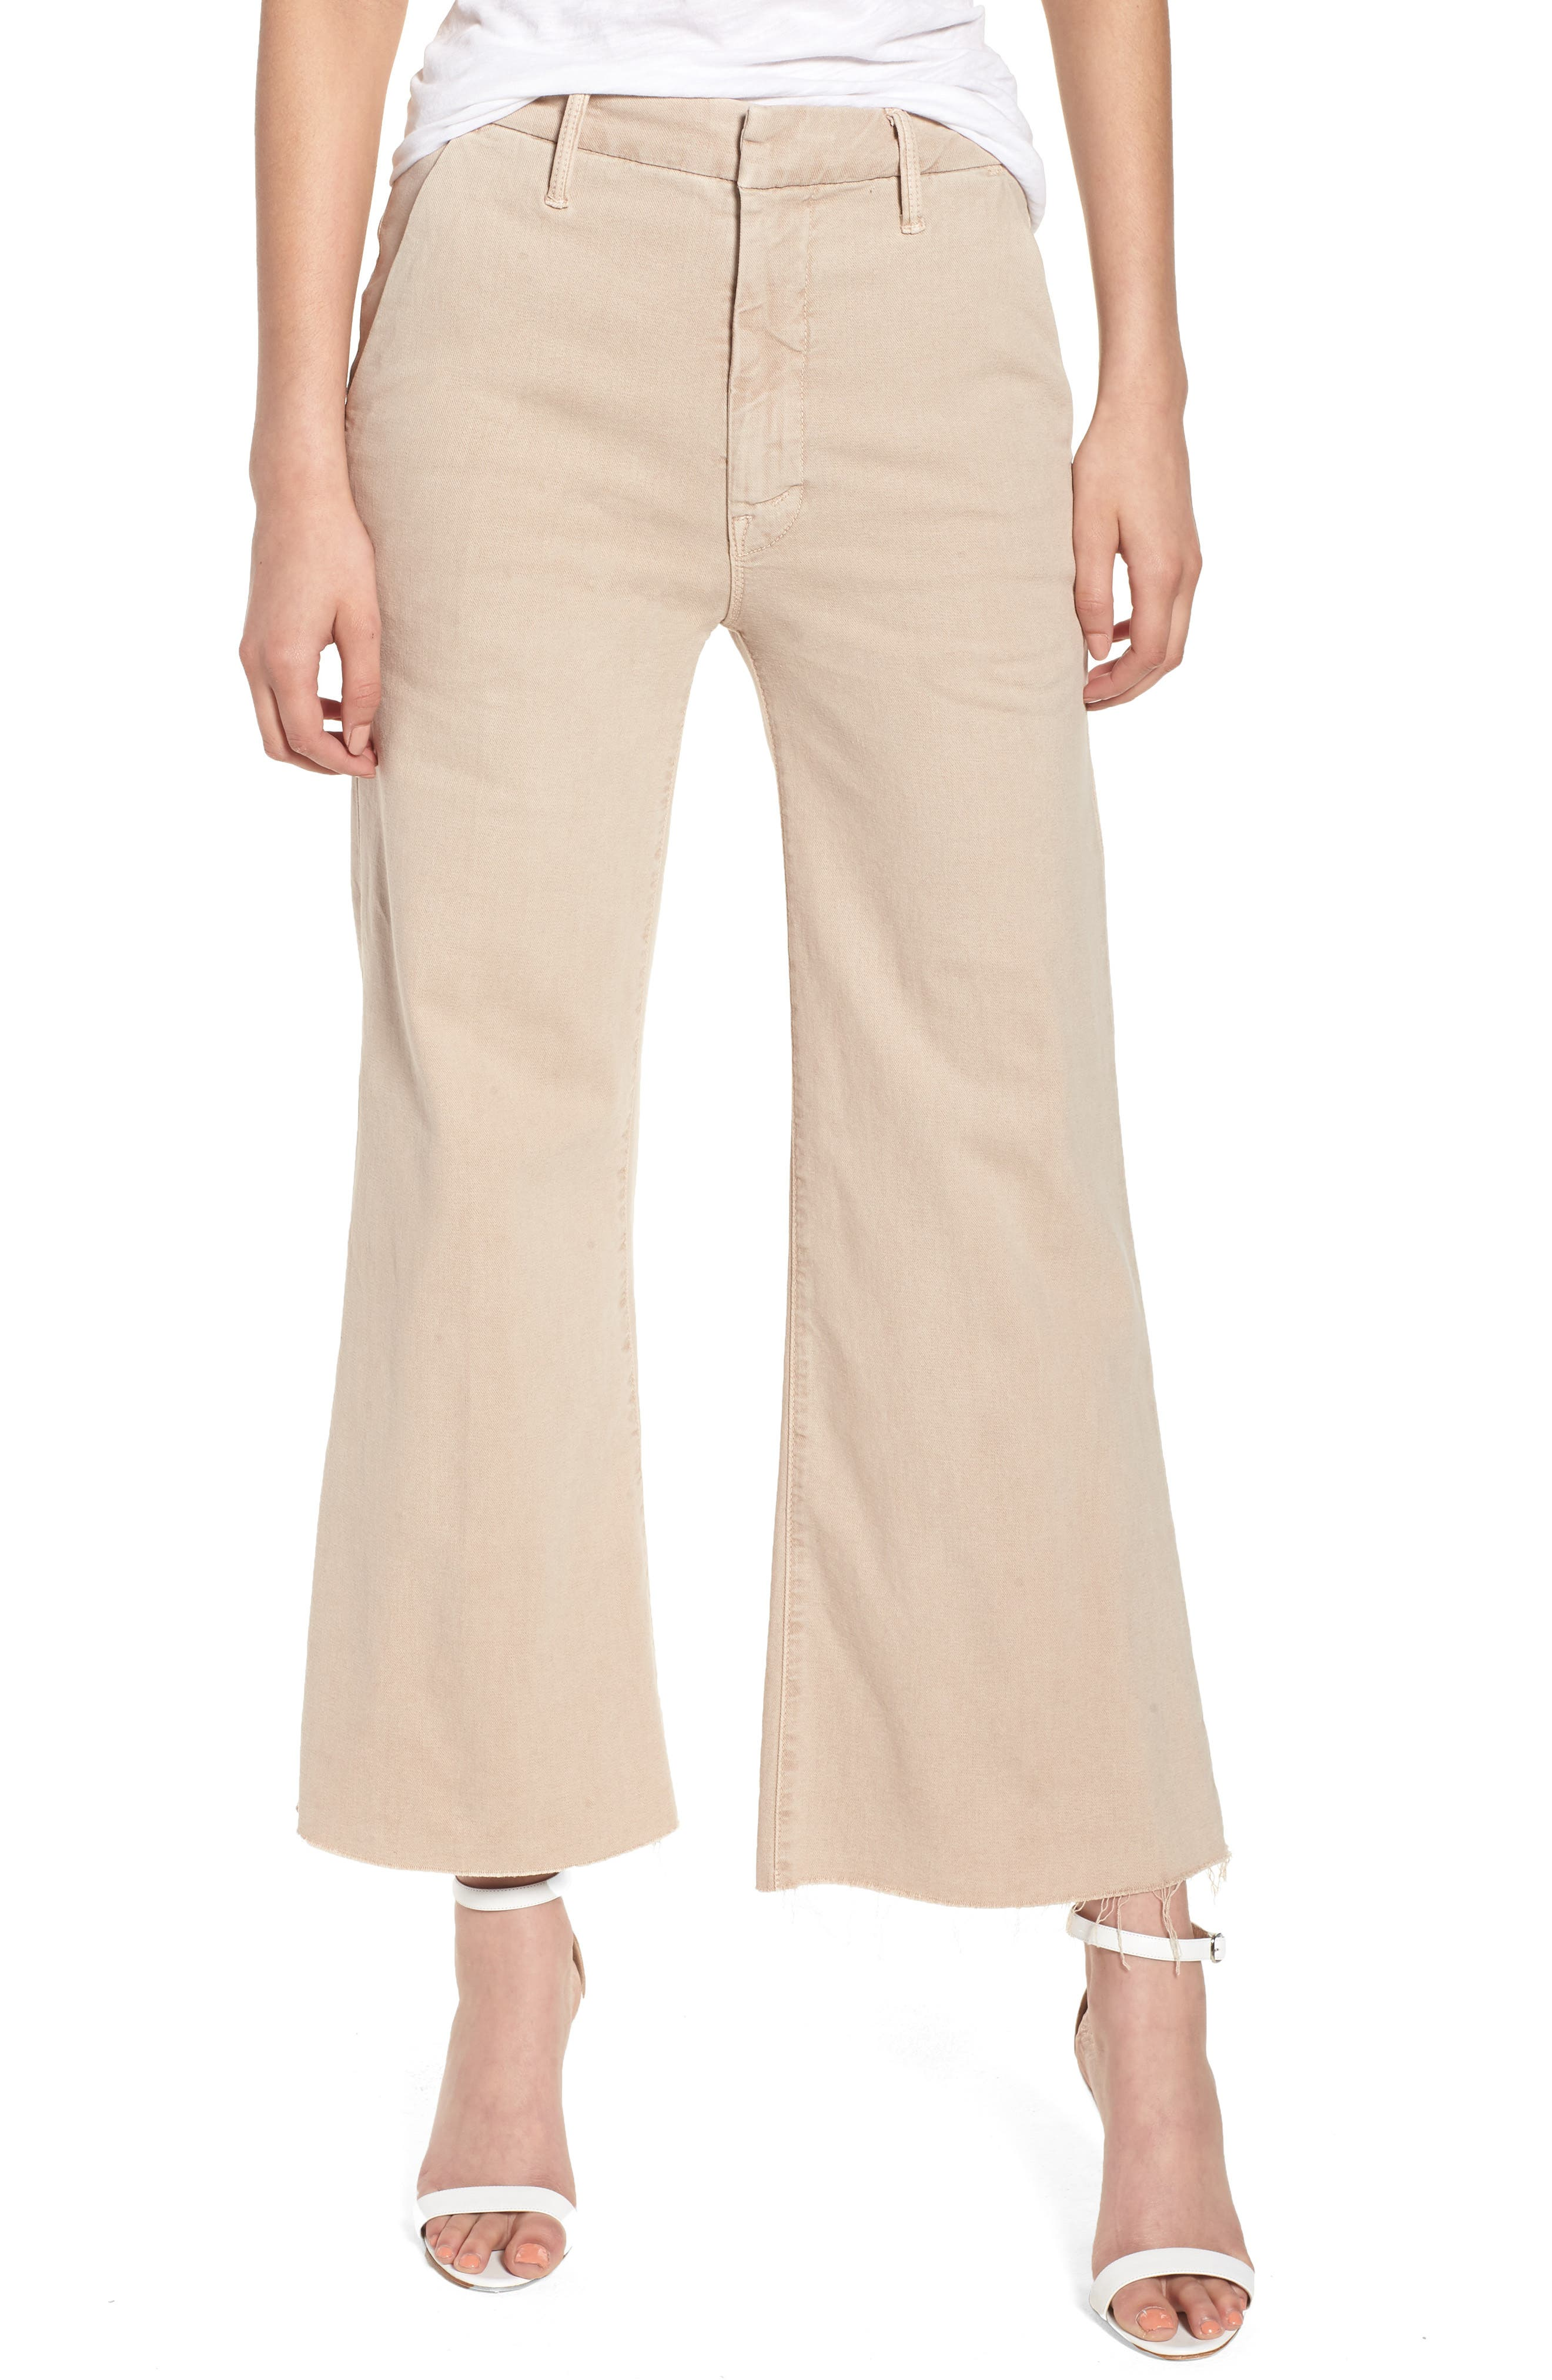 The Roller Fray Crop Wide Leg Jeans,                             Main thumbnail 1, color,                             250